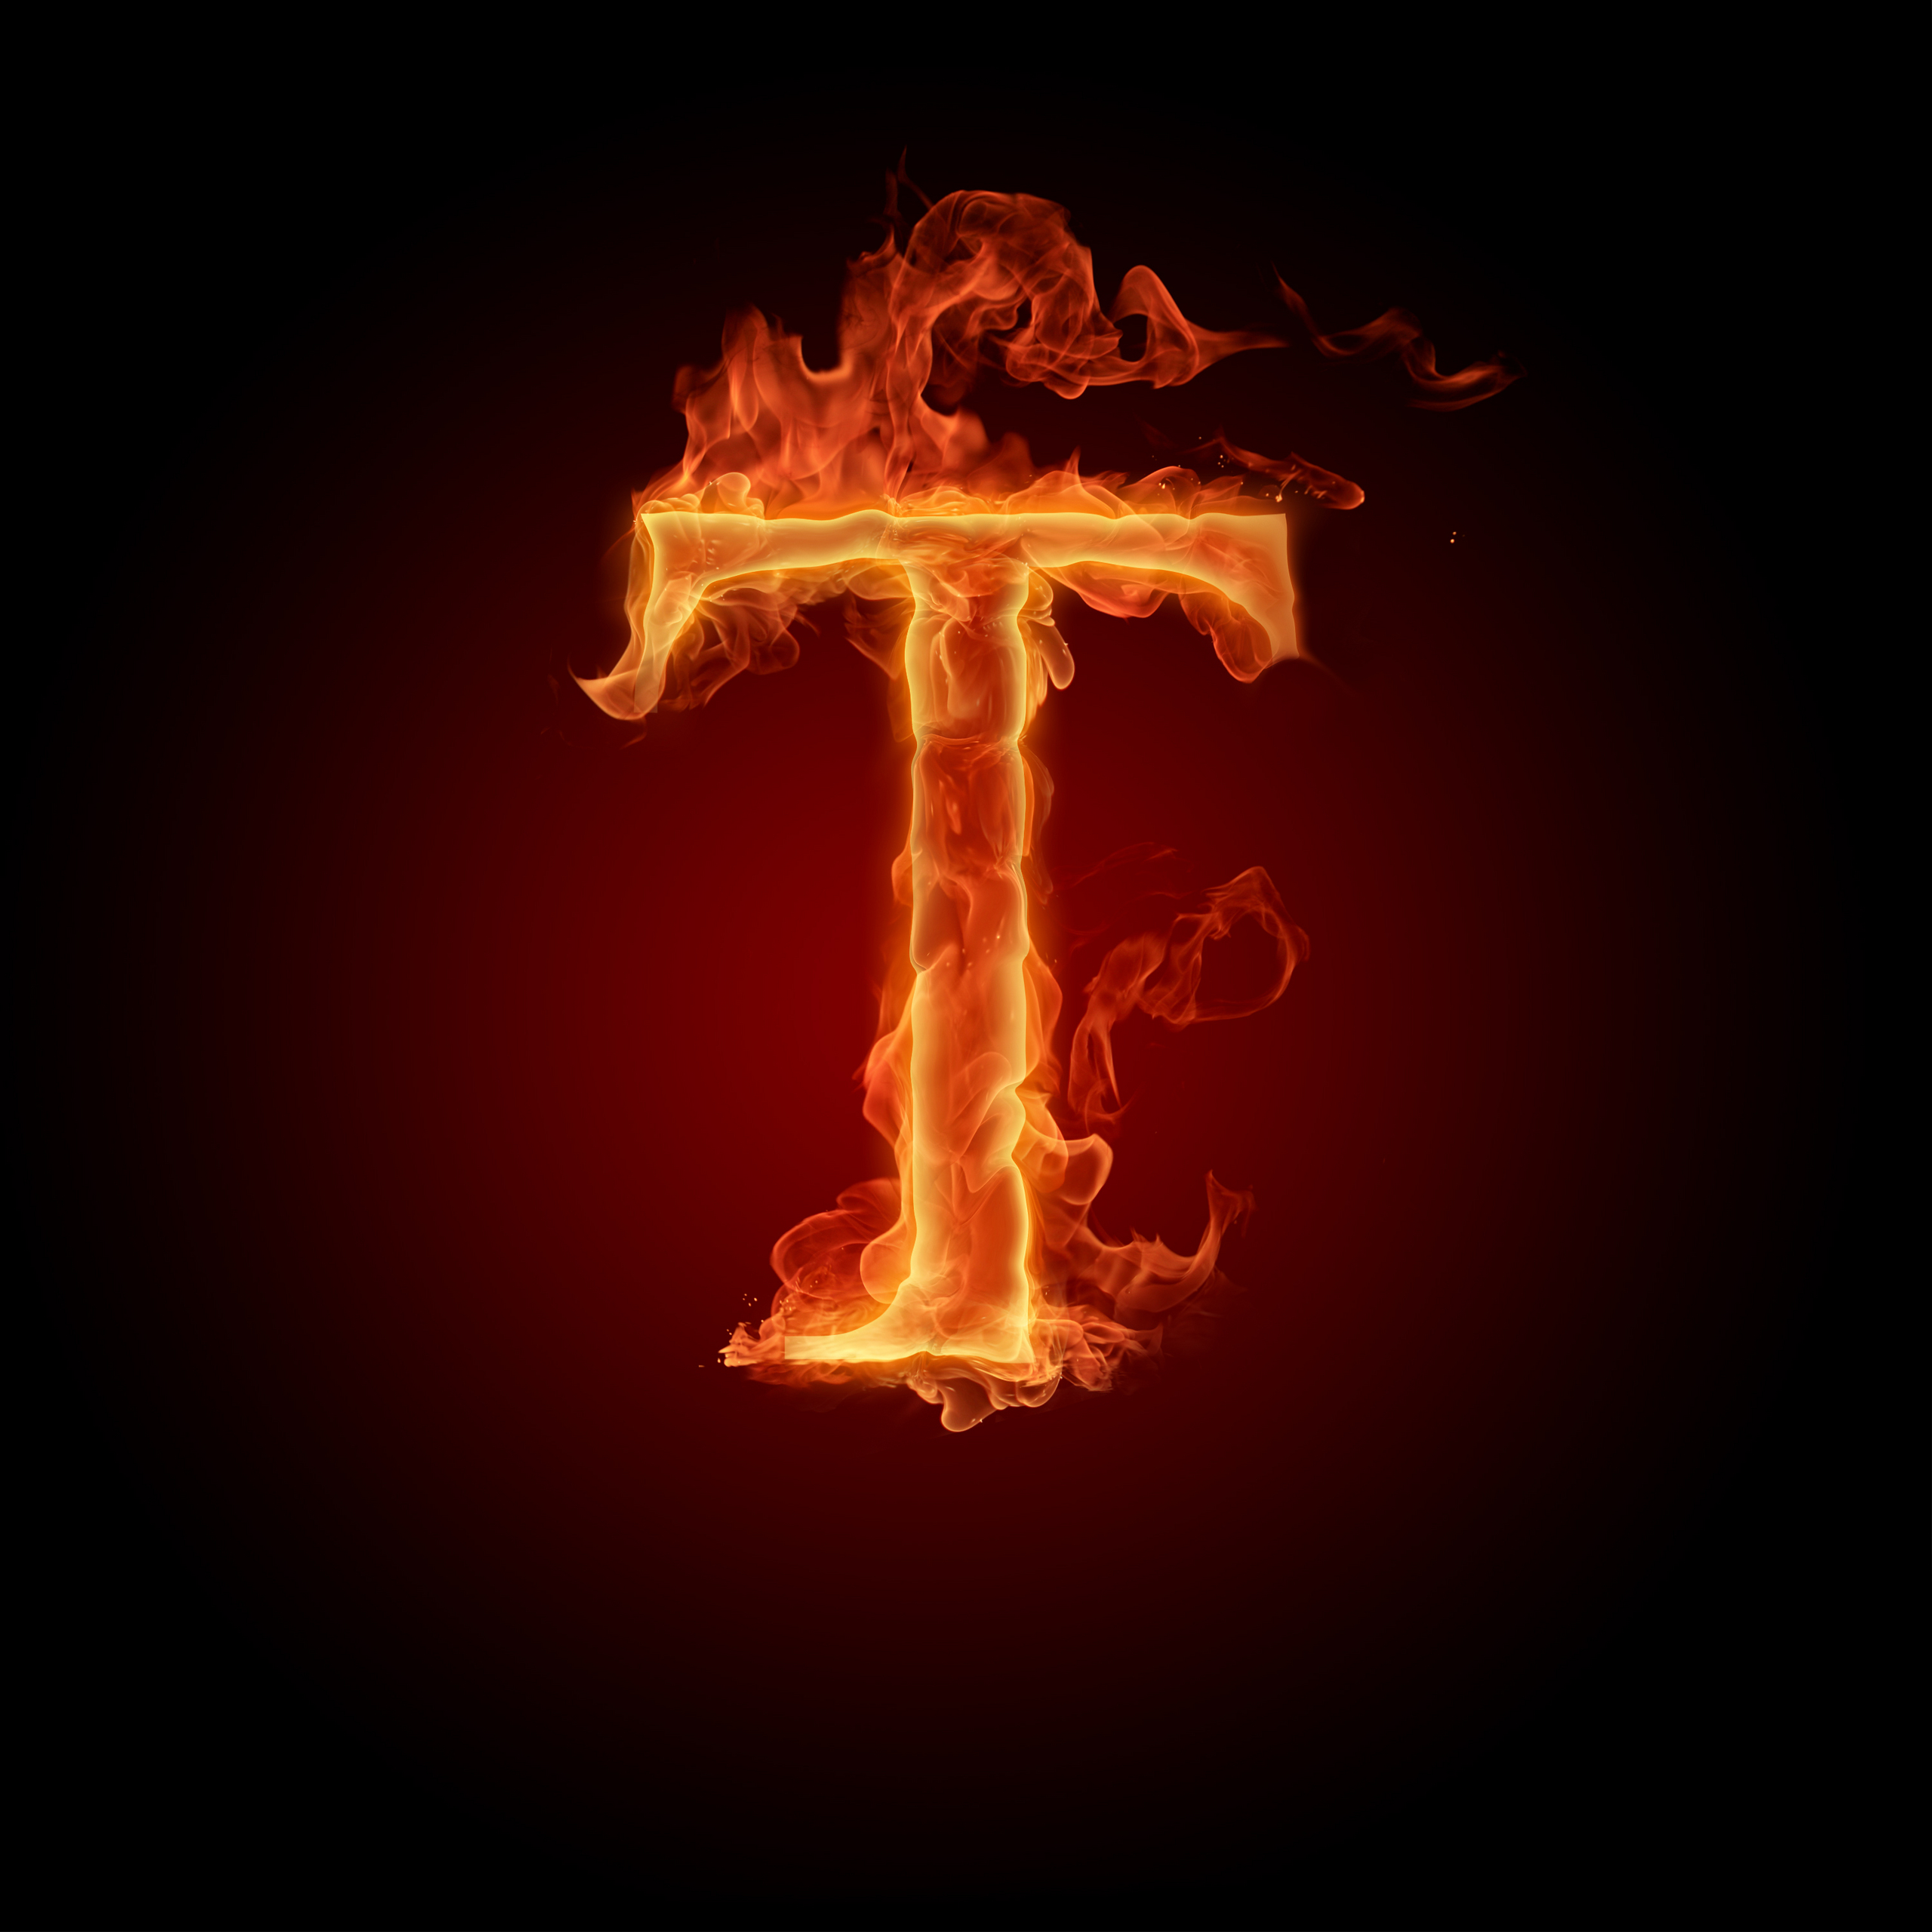 H Letter In Fire Hd The Letter T images Th...